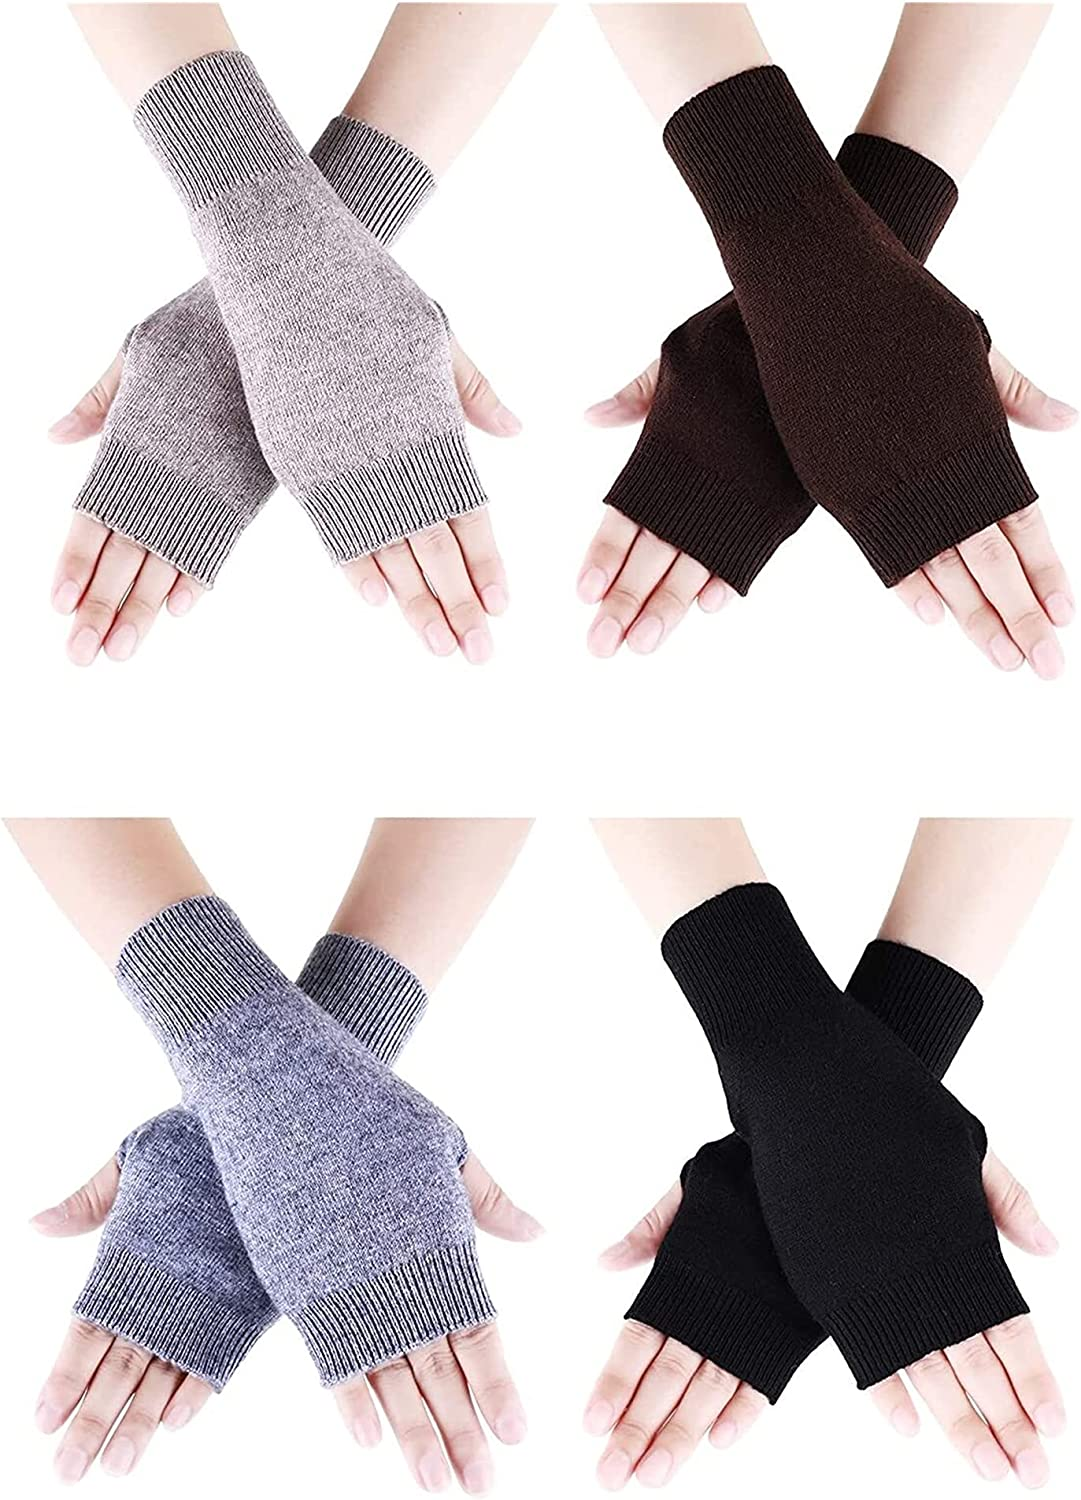 Jsmhh 4 Pairs Cashmere Feel Fingerless Gloves with Thumb Hole Warm Gloves for Women and Men